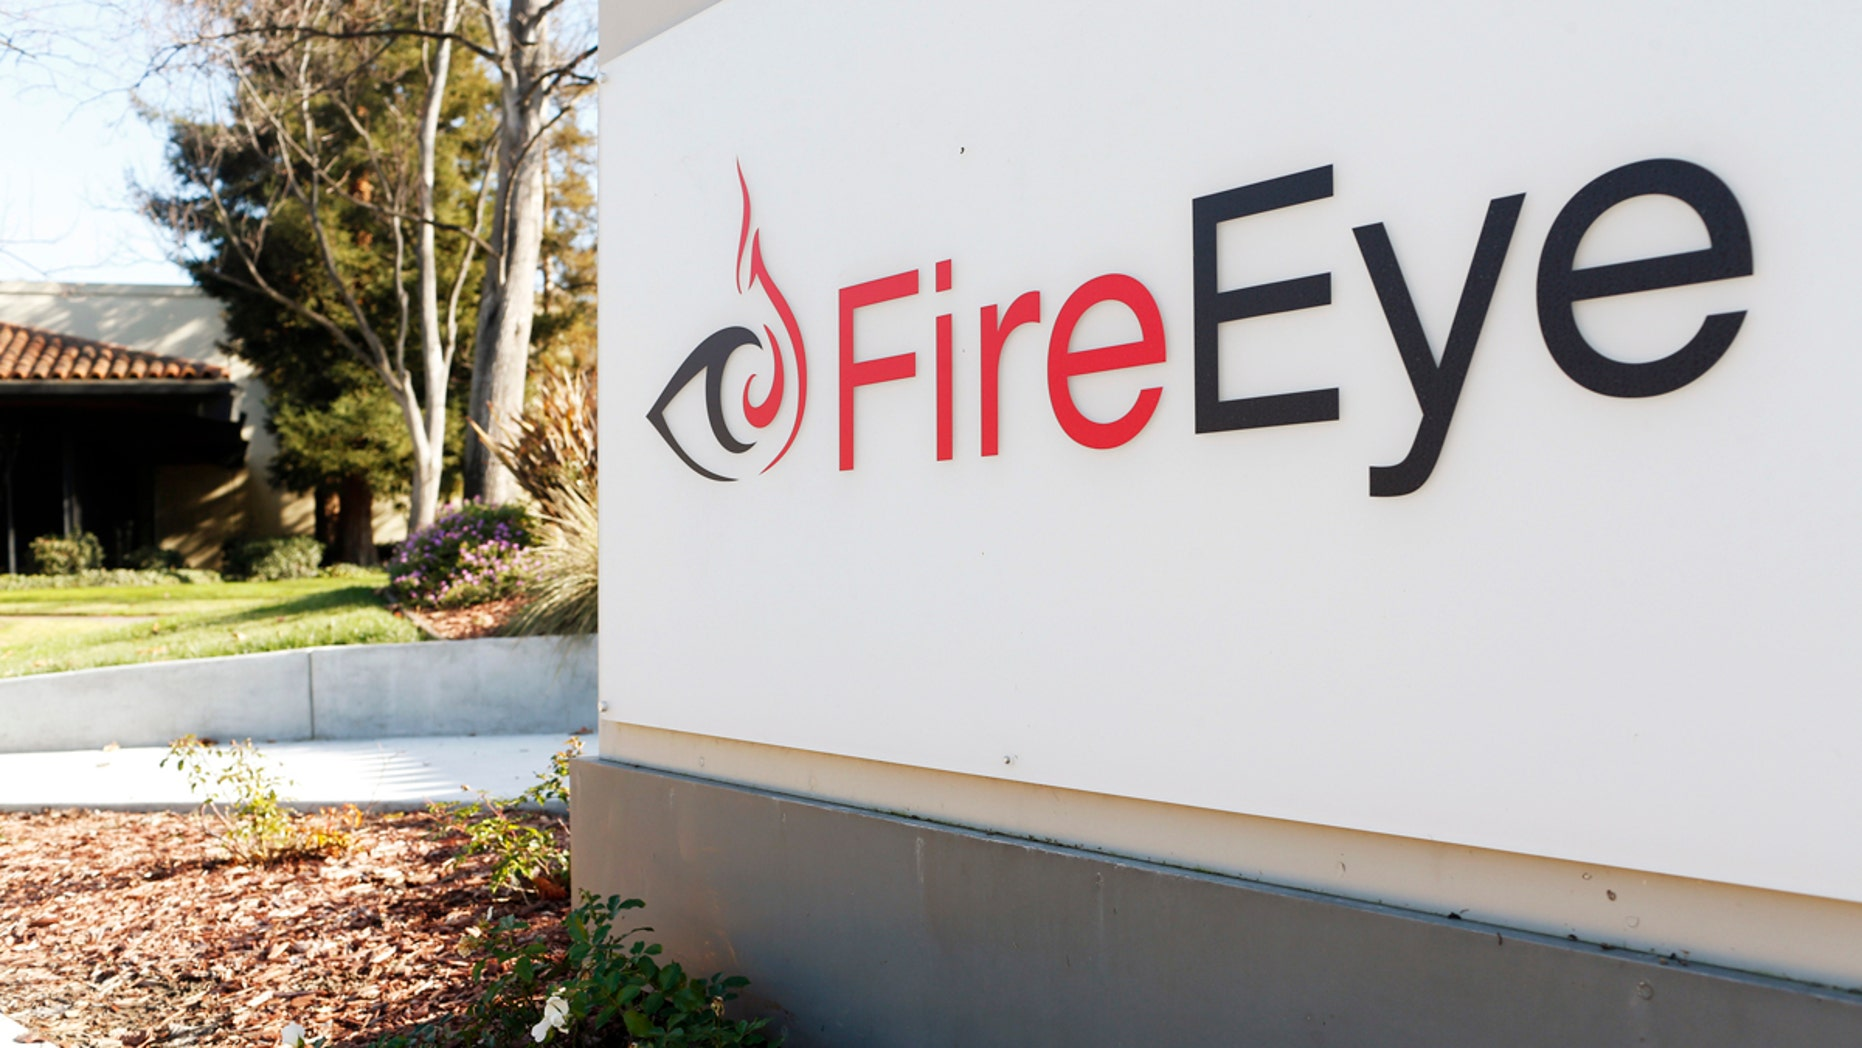 File photo - The logo for FireEye is seen outside of the company's offices in California, Dec. 29, 2014